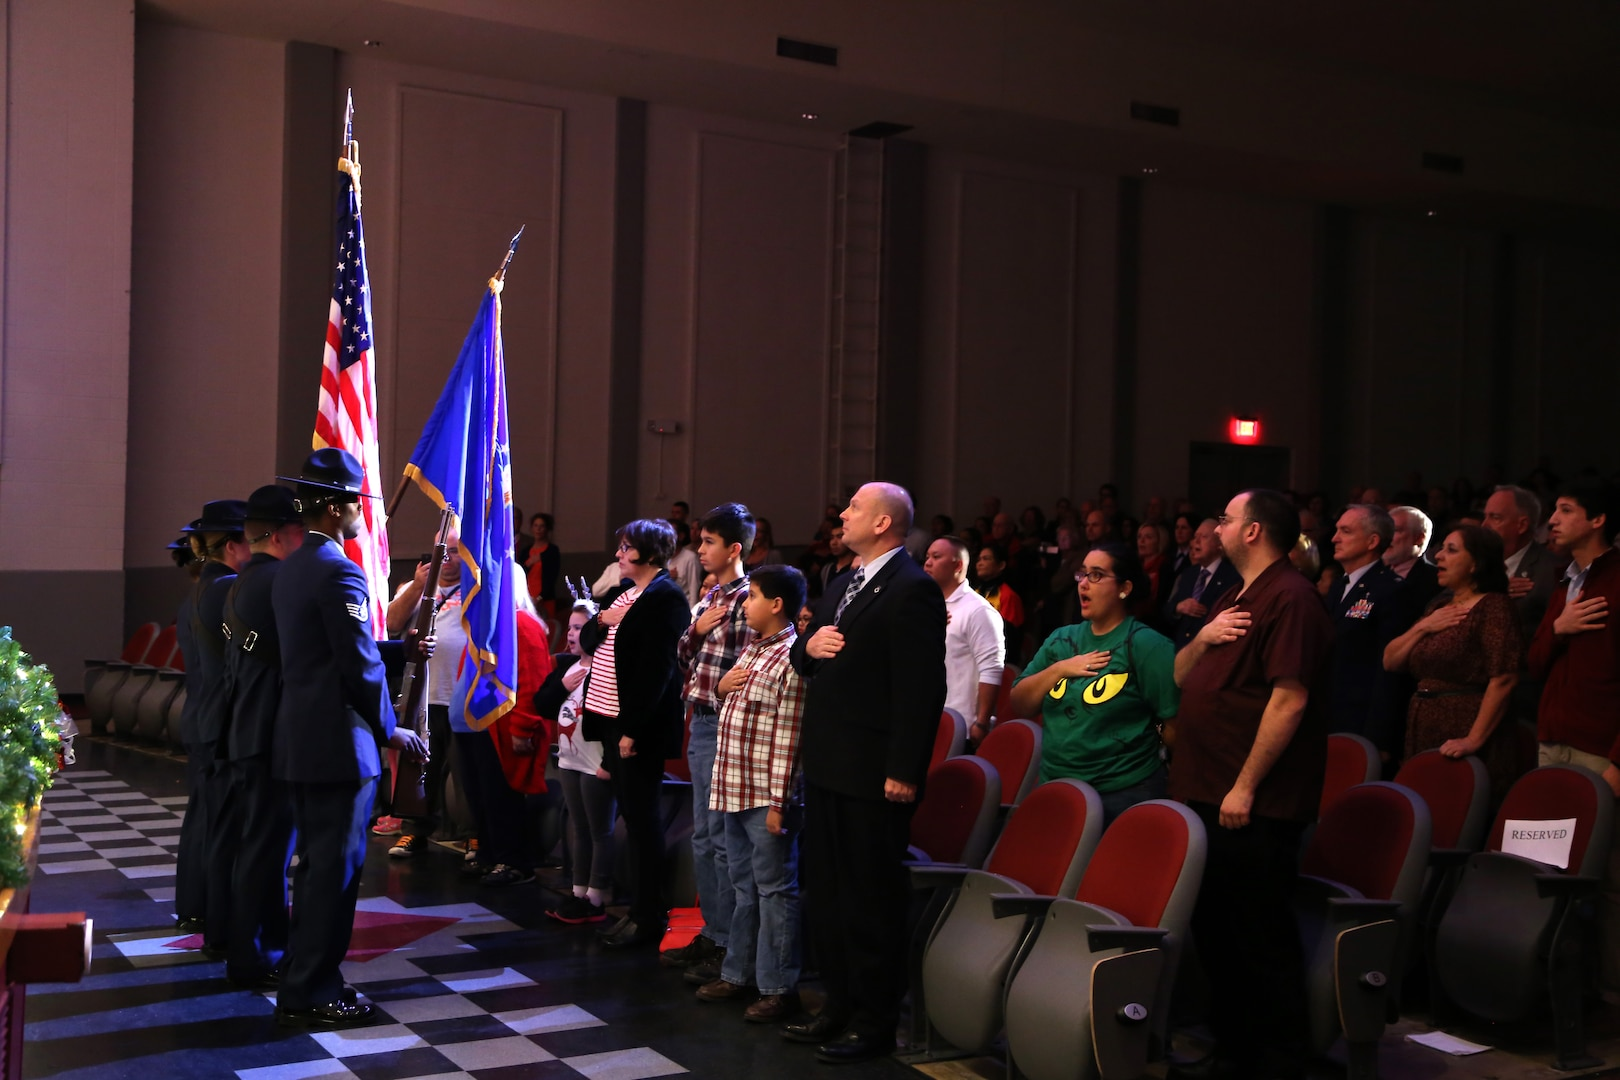 Audience members show respect to the country by placing their hand over their heart or standing at attention while military training instructors present the colors Dec. 17 at the Joint Base San Antonio-Lackland Bob Hope Theater. (U.S. Air Force photo by Airman 1st Class Lincoln Korver)